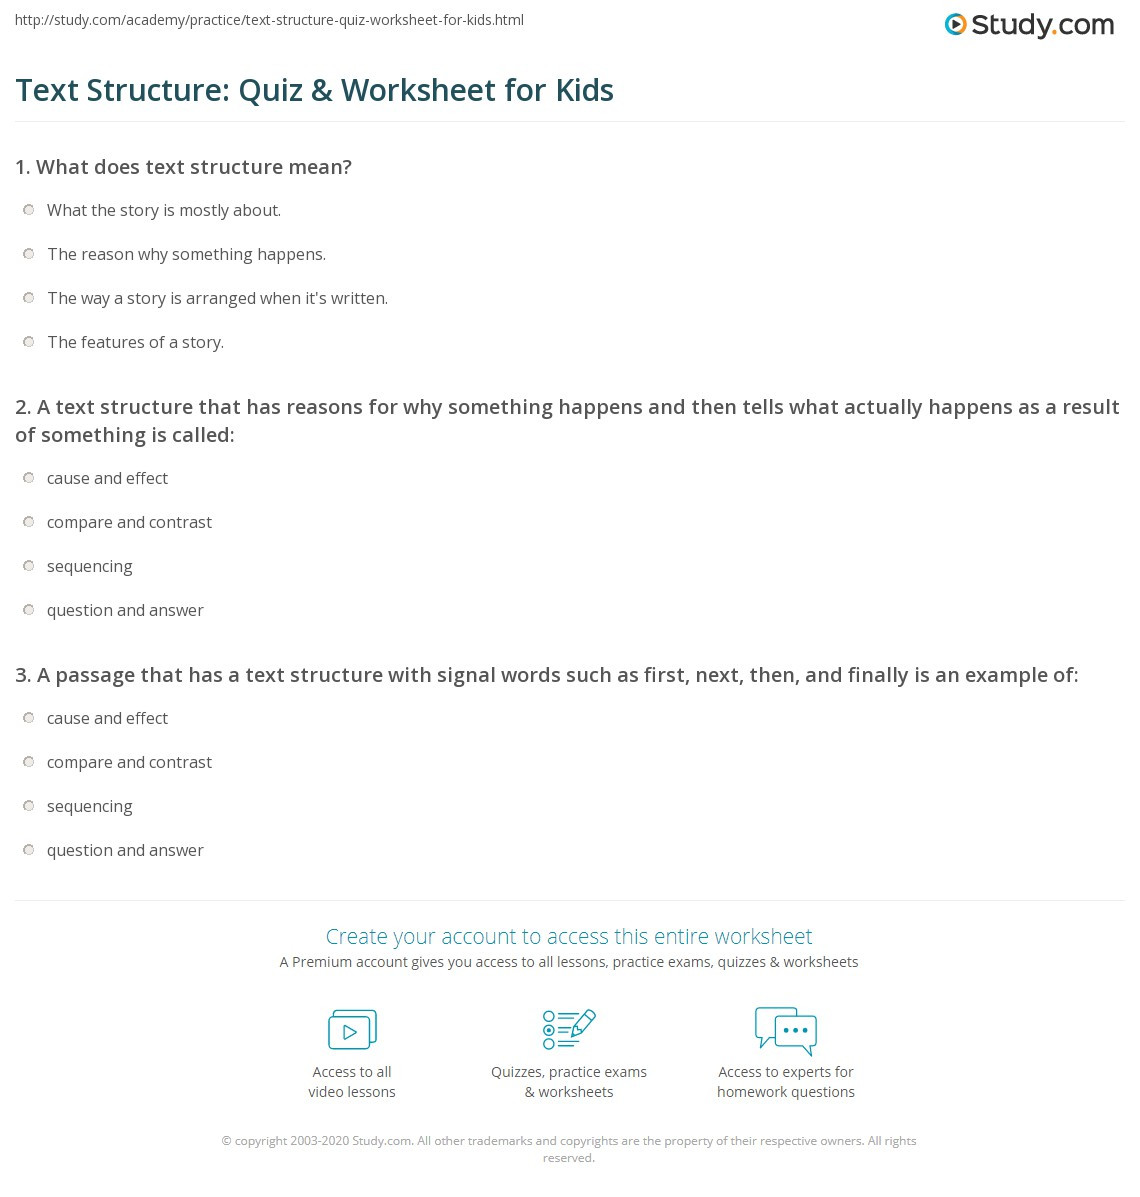 Text Structure Worksheets Grade 4 Text Structure Quiz & Worksheet for Kids